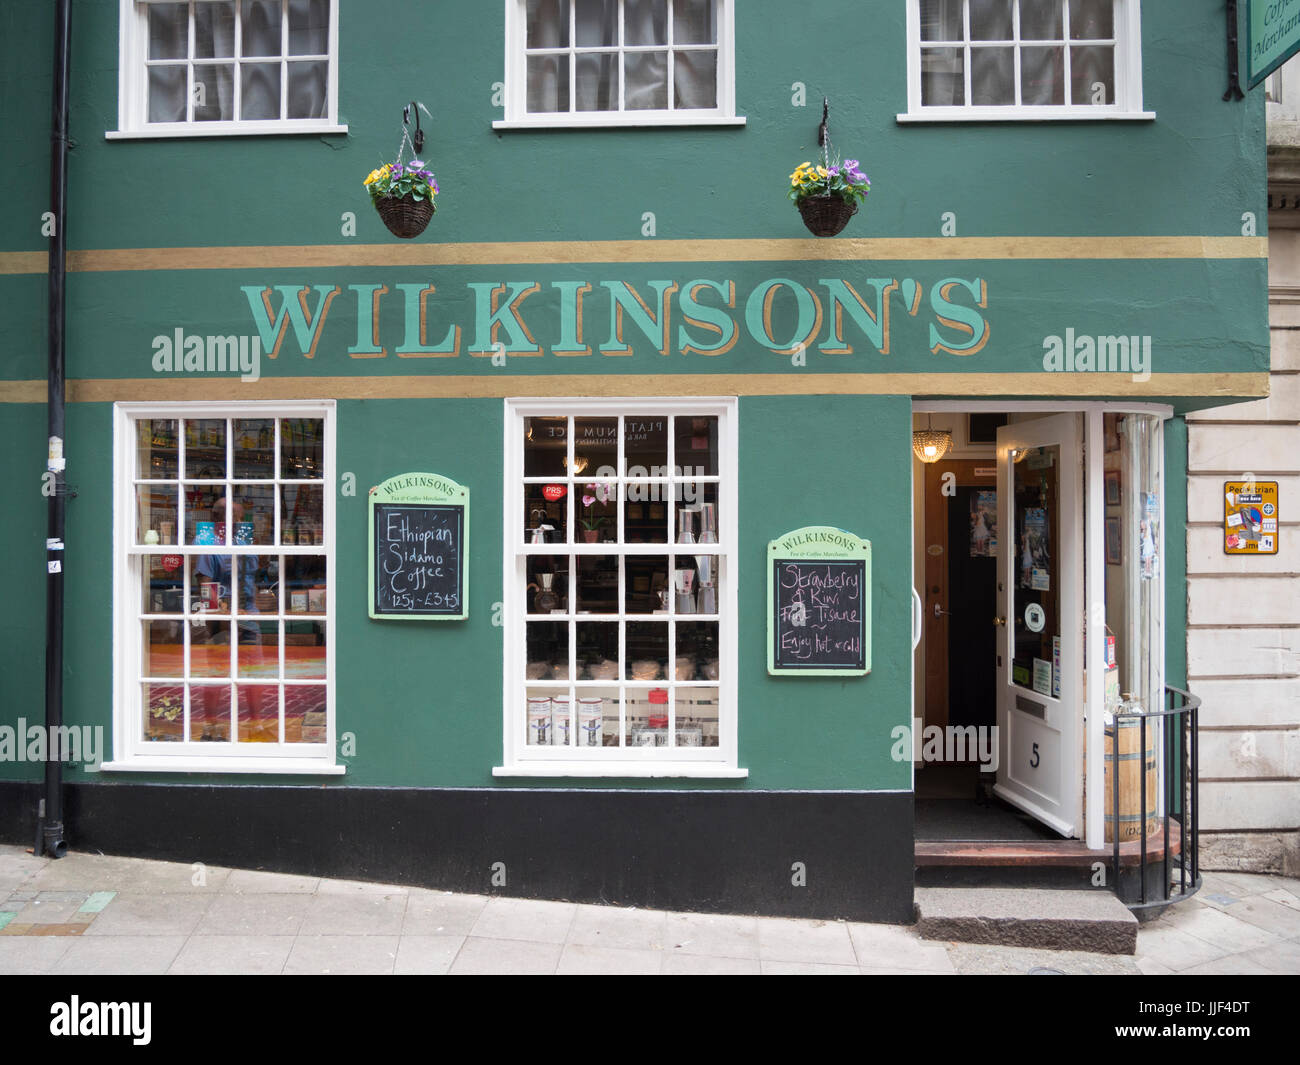 Wilkinsons tea and coffee merchant shop in Norwich Norfolk UK - Stock Image